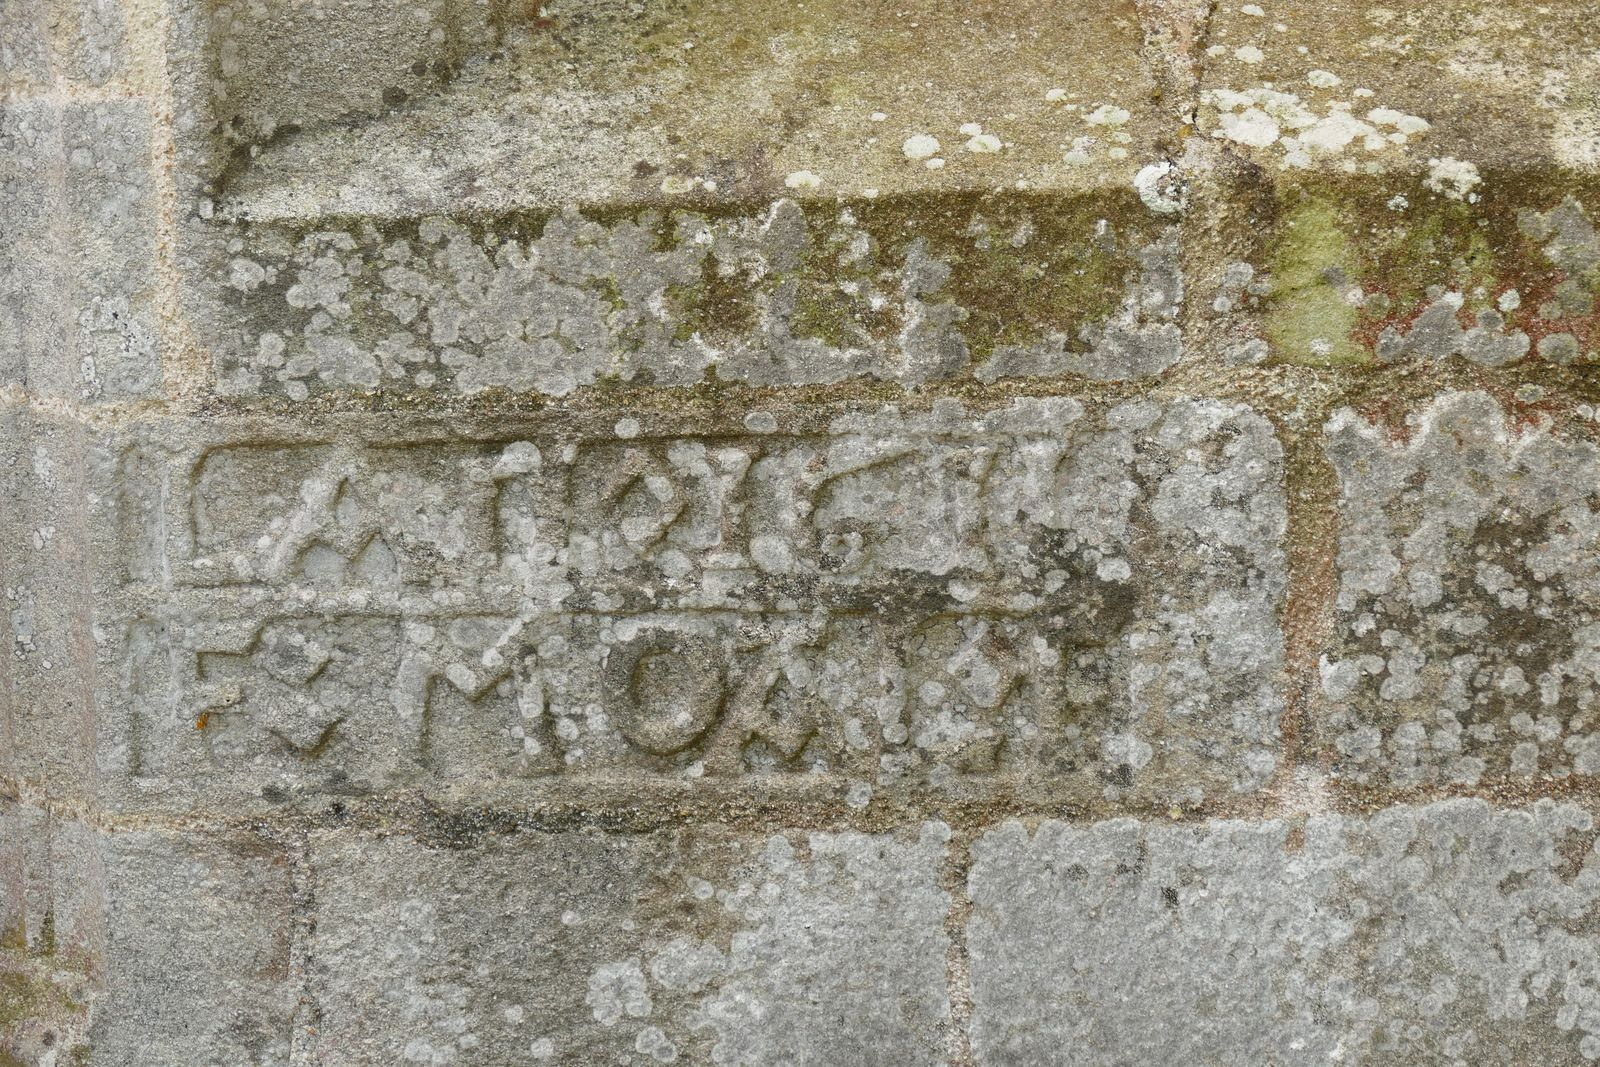 Inscription (leucogranite)  de la  chapelle Saint-Tugen en Primelin. Photographie lavieb-aile mars 2020.